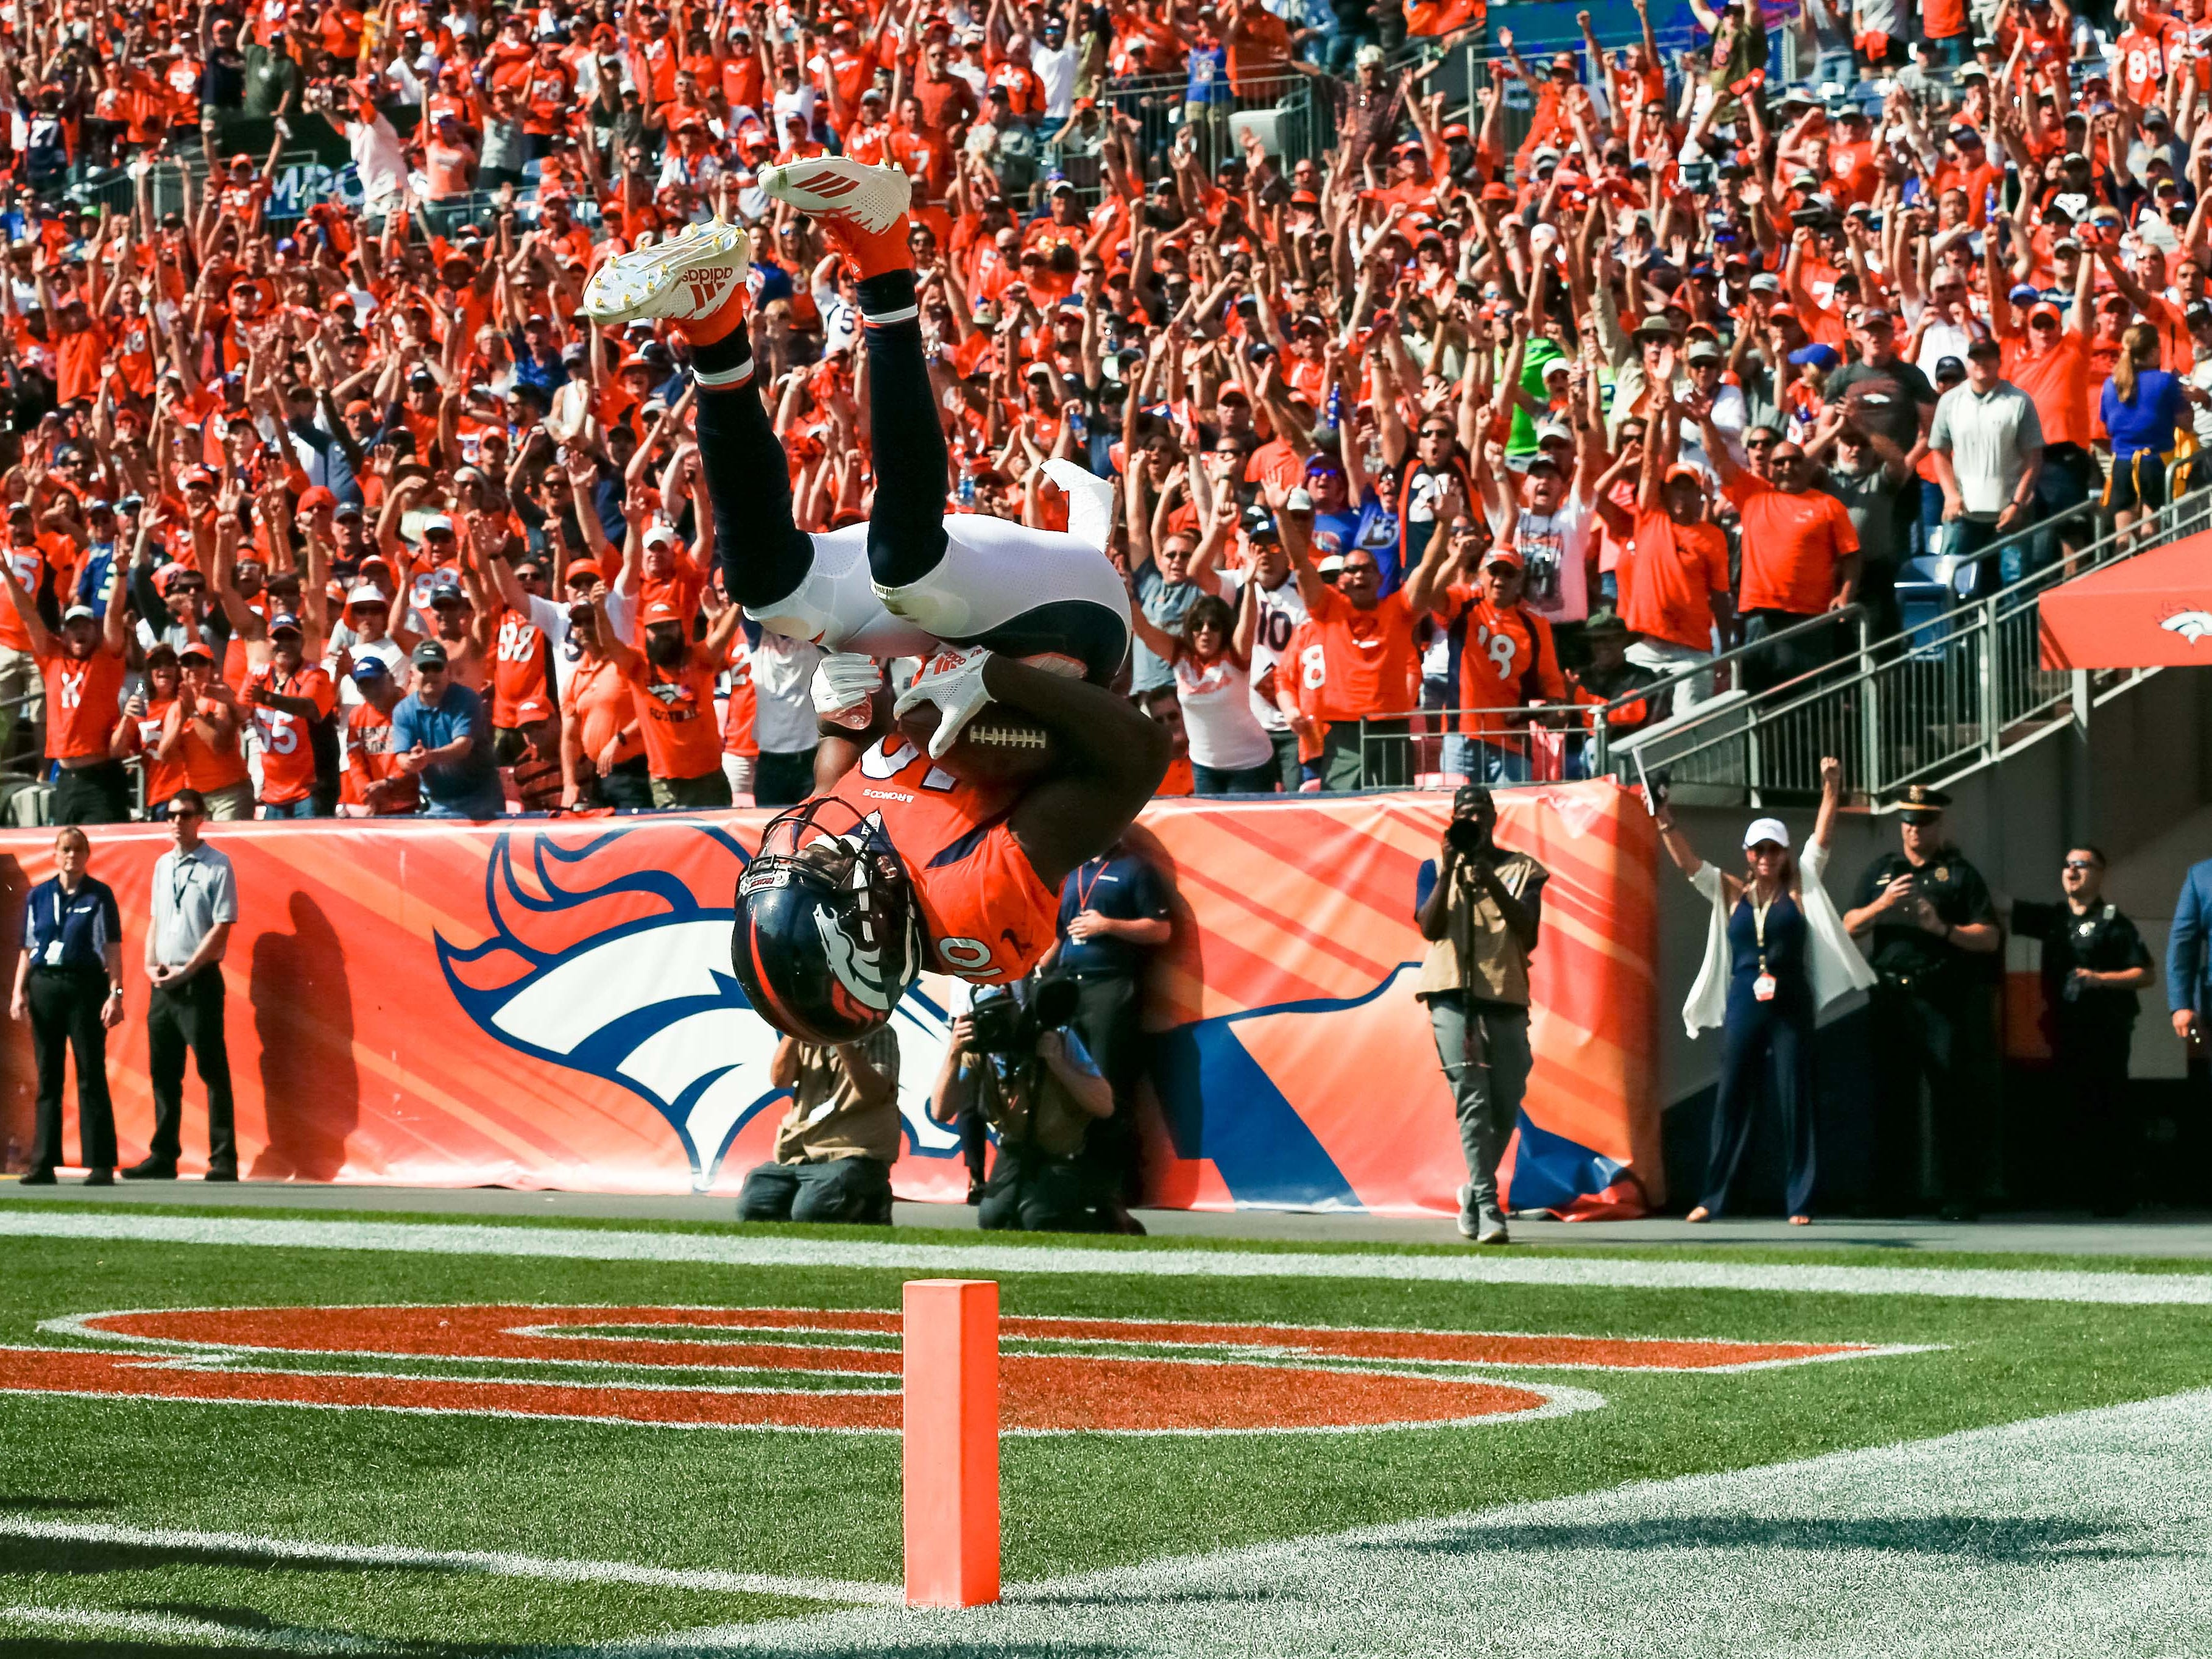 Sep 9, 2018; Denver, CO, USA; Denver Broncos wide receiver Emmanuel Sanders (10) flips into the end zone after scoring a touchdown in the second quarter against the Seattle Seahawks at Broncos Stadium at Mile High. Mandatory Credit: Isaiah J. Downing-USA TODAY Sports